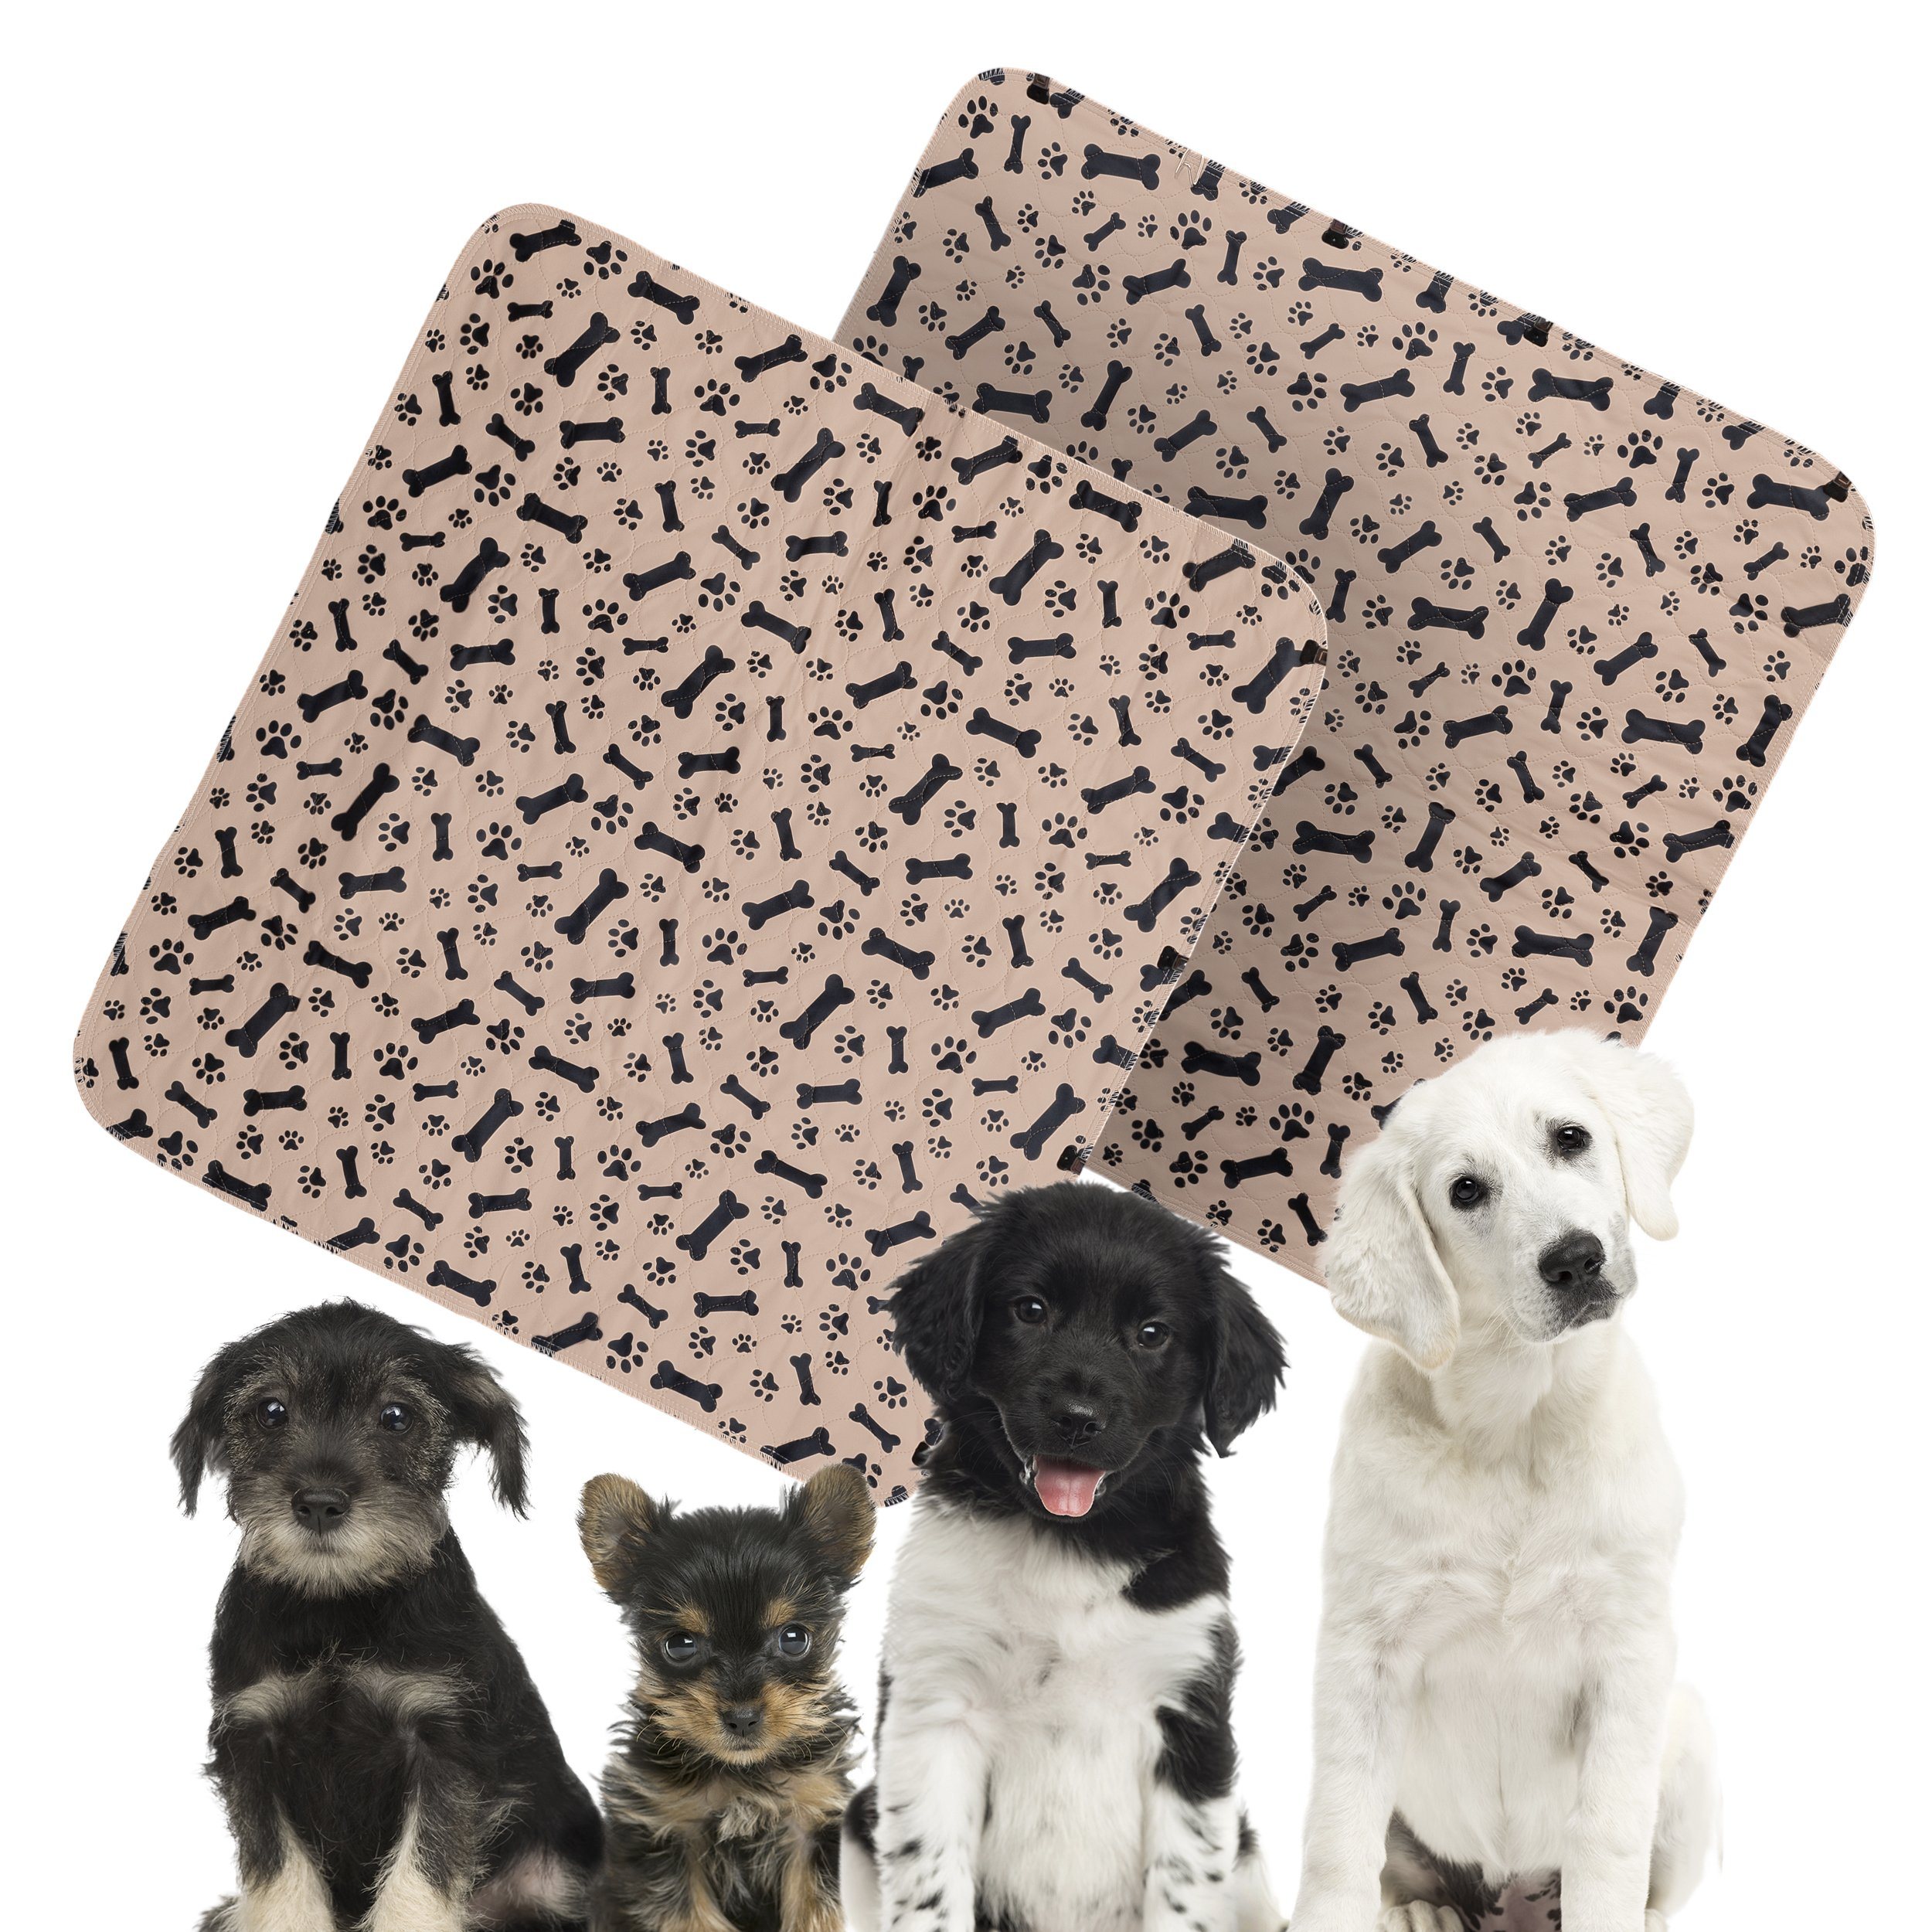 """WILDTRAILZ Dog/Puppy Washable Pee Pads with Triple Layer Design for Locked in Protection! – Special Set Includes Two Paw and Bone Print Large Size 31.5"""" x 35.4"""" Reusable Training Pee Pads"""